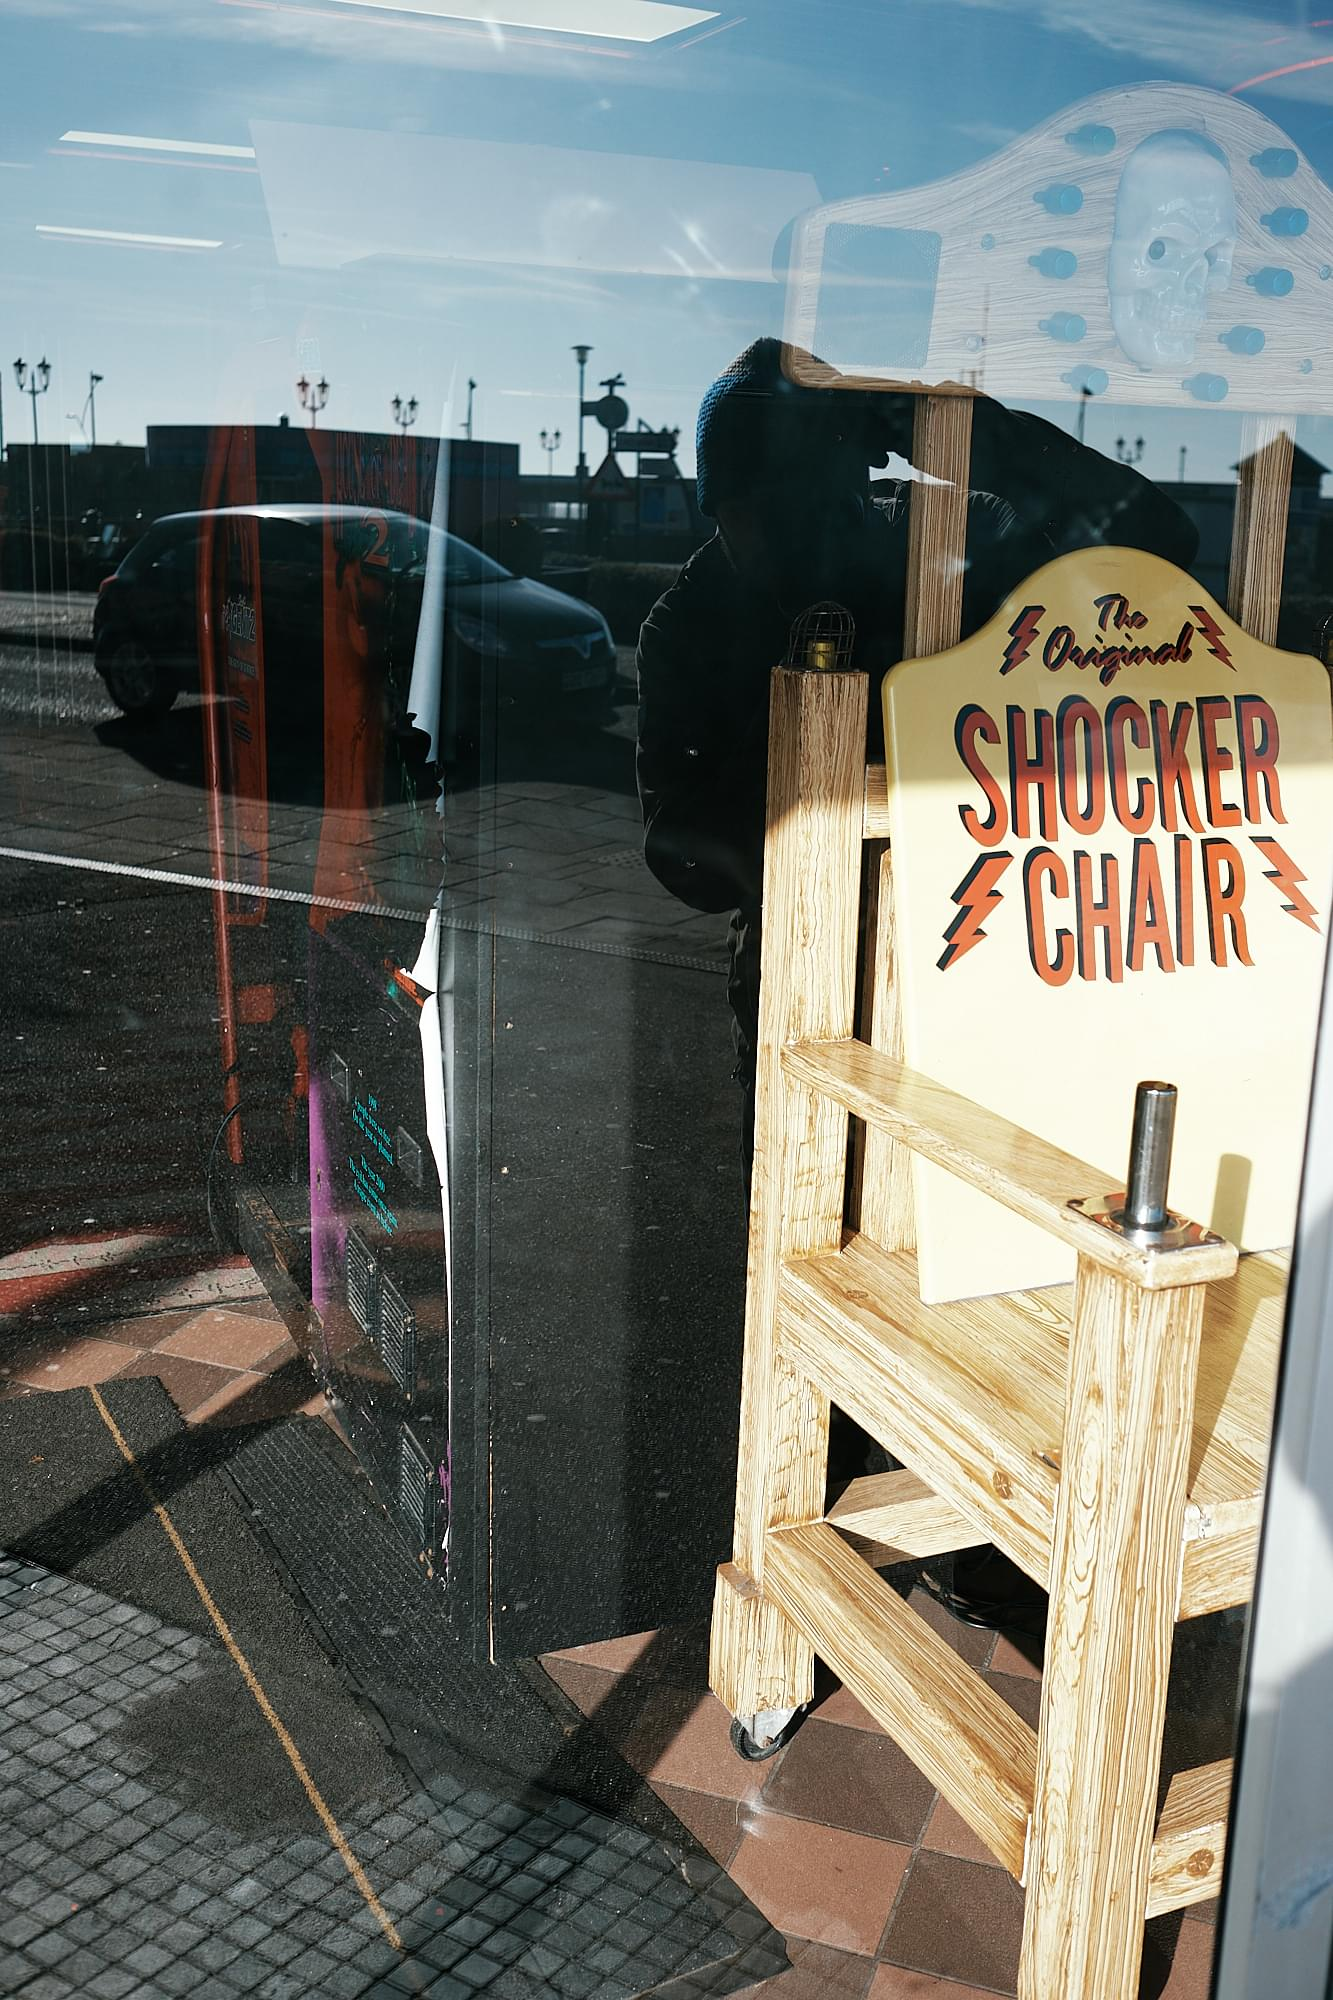 'shocker chair' attraction